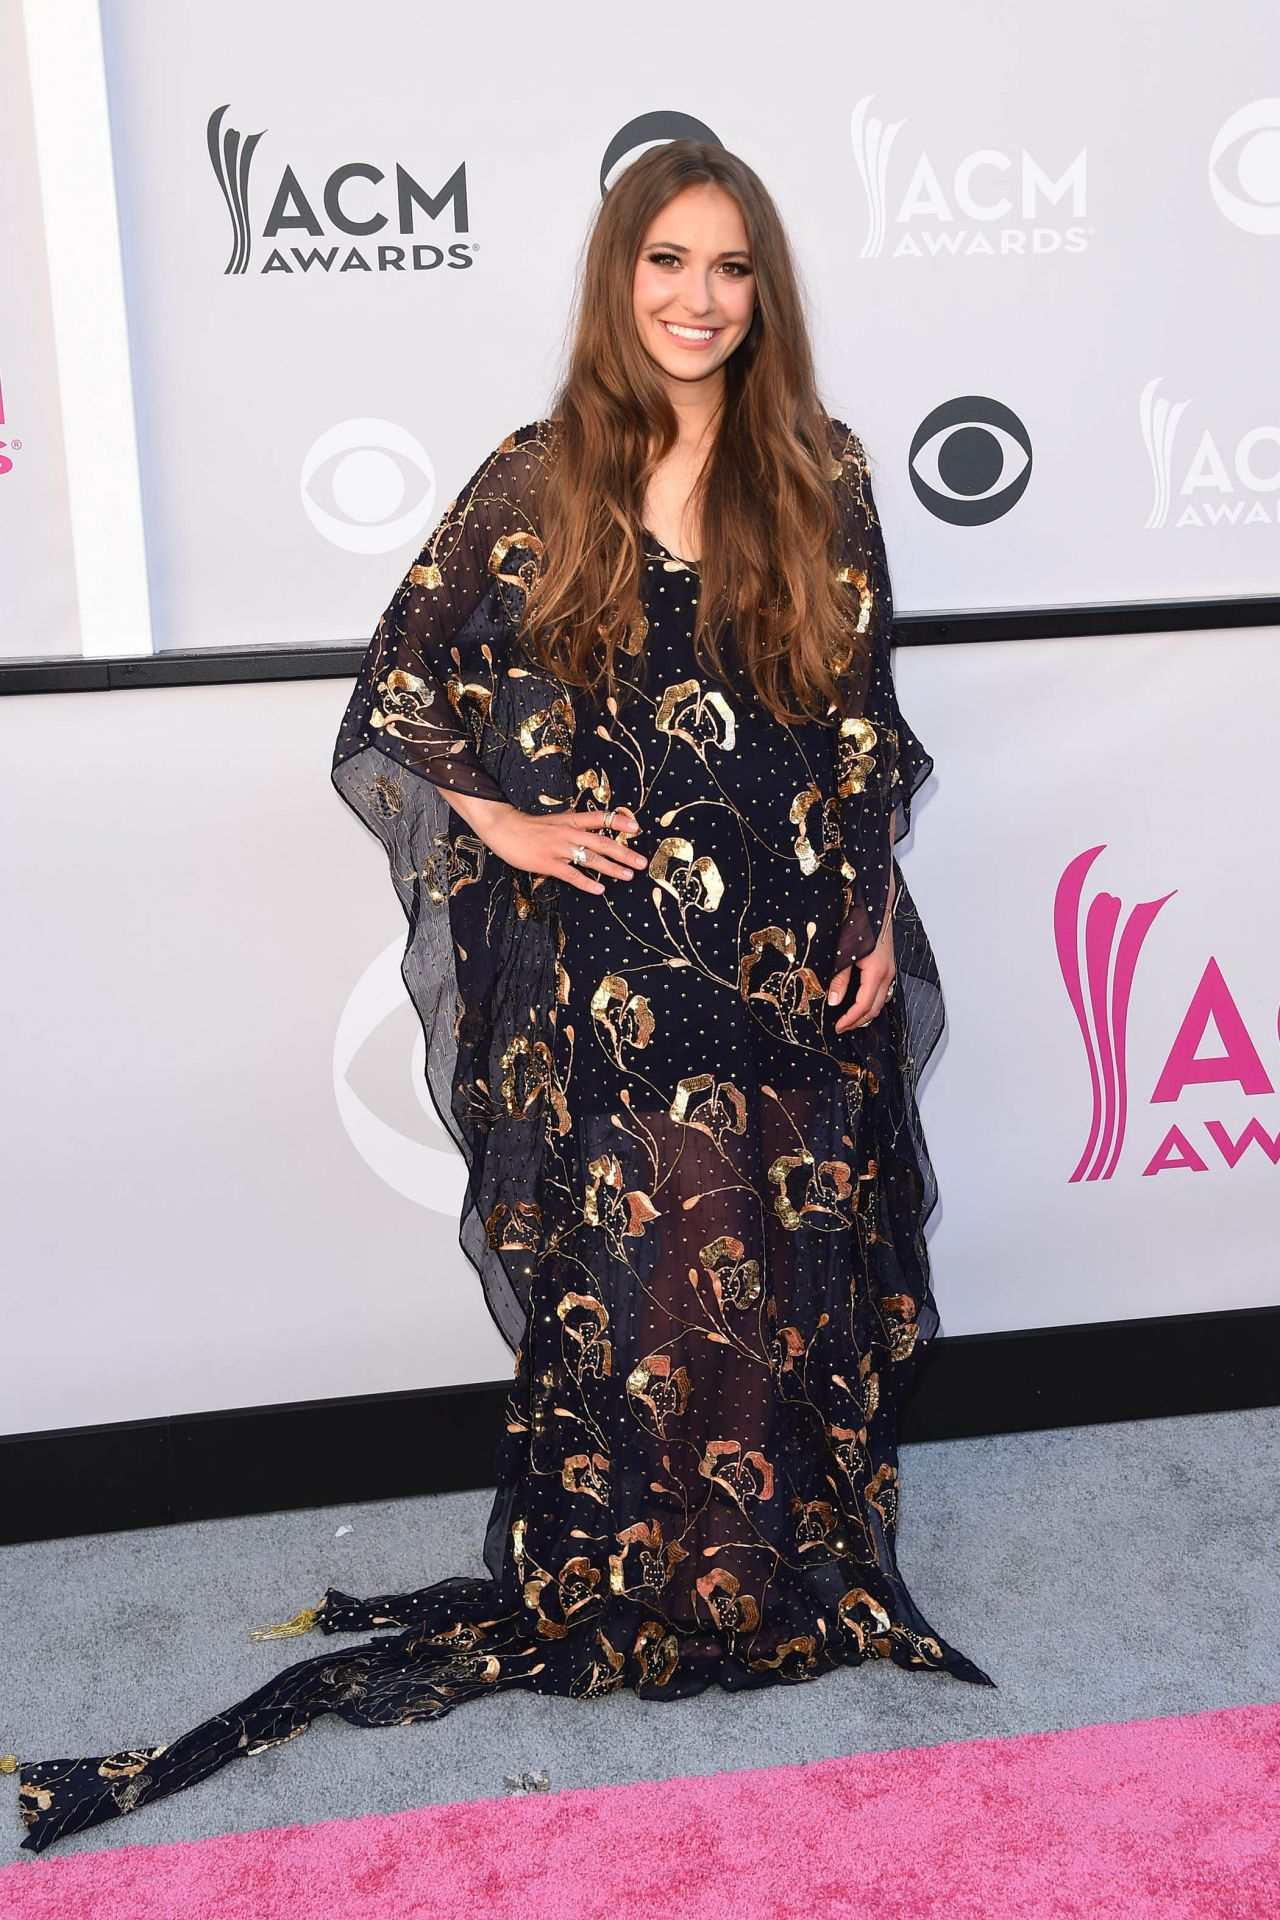 Lauren Daigle Husband >> Lauren Daigle - ACM Awards2017 in Las Vegas